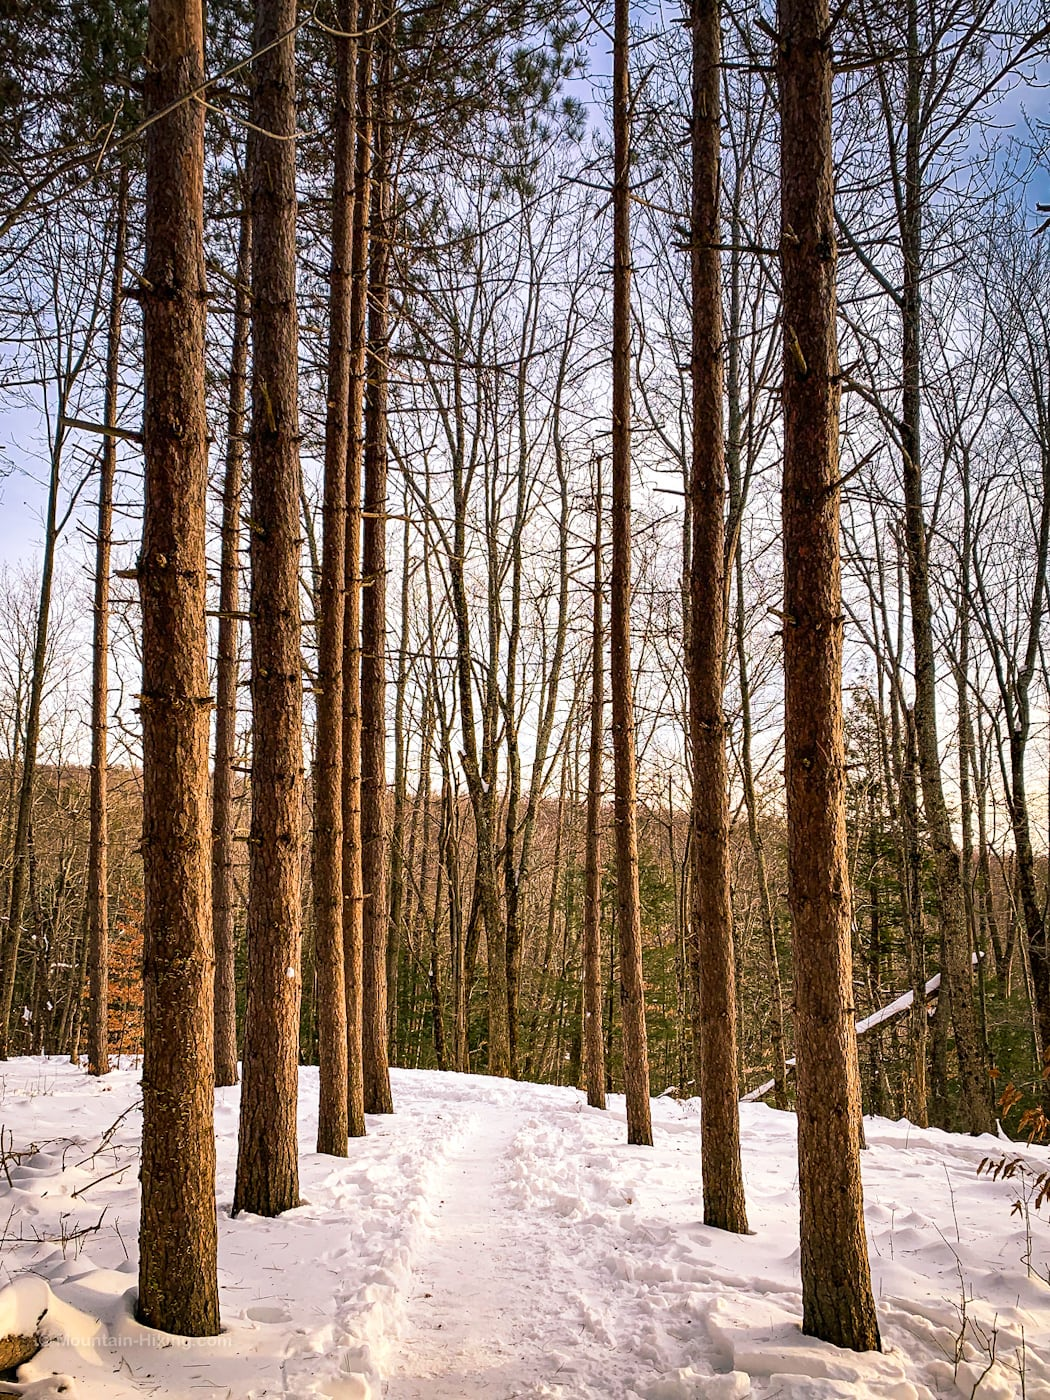 grove of trees in snow